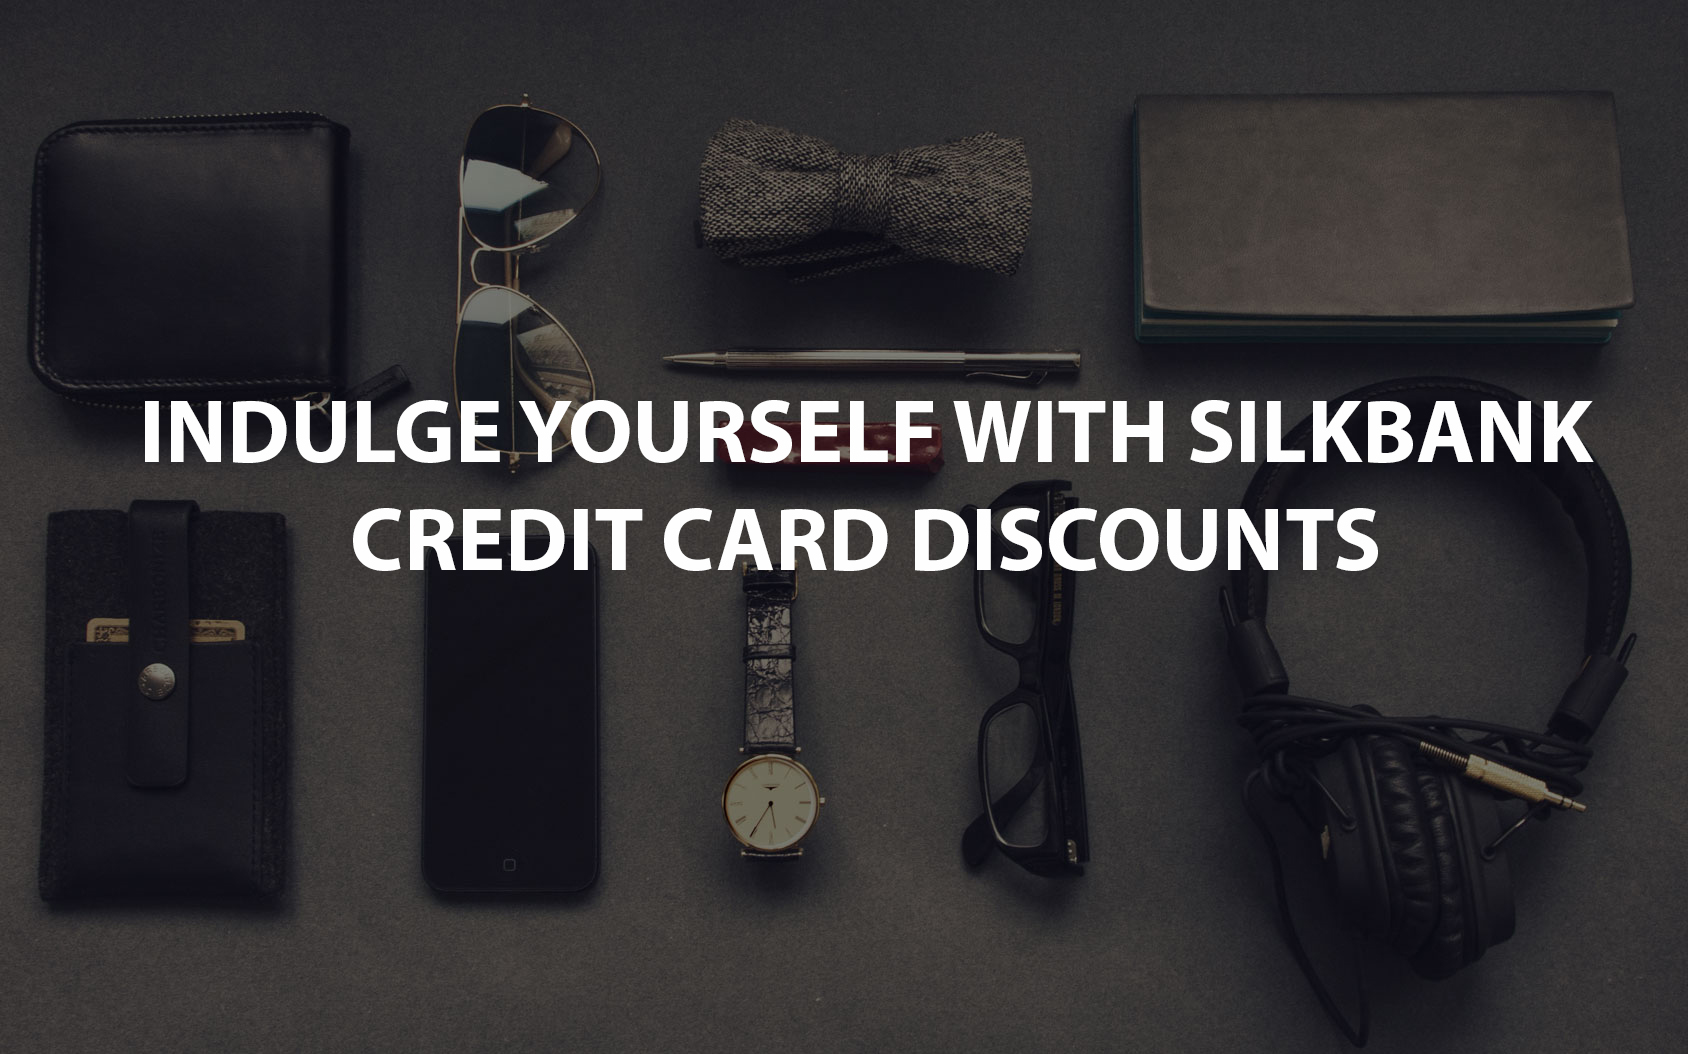 Credit Card| Silkbank Limited - Yes We Can